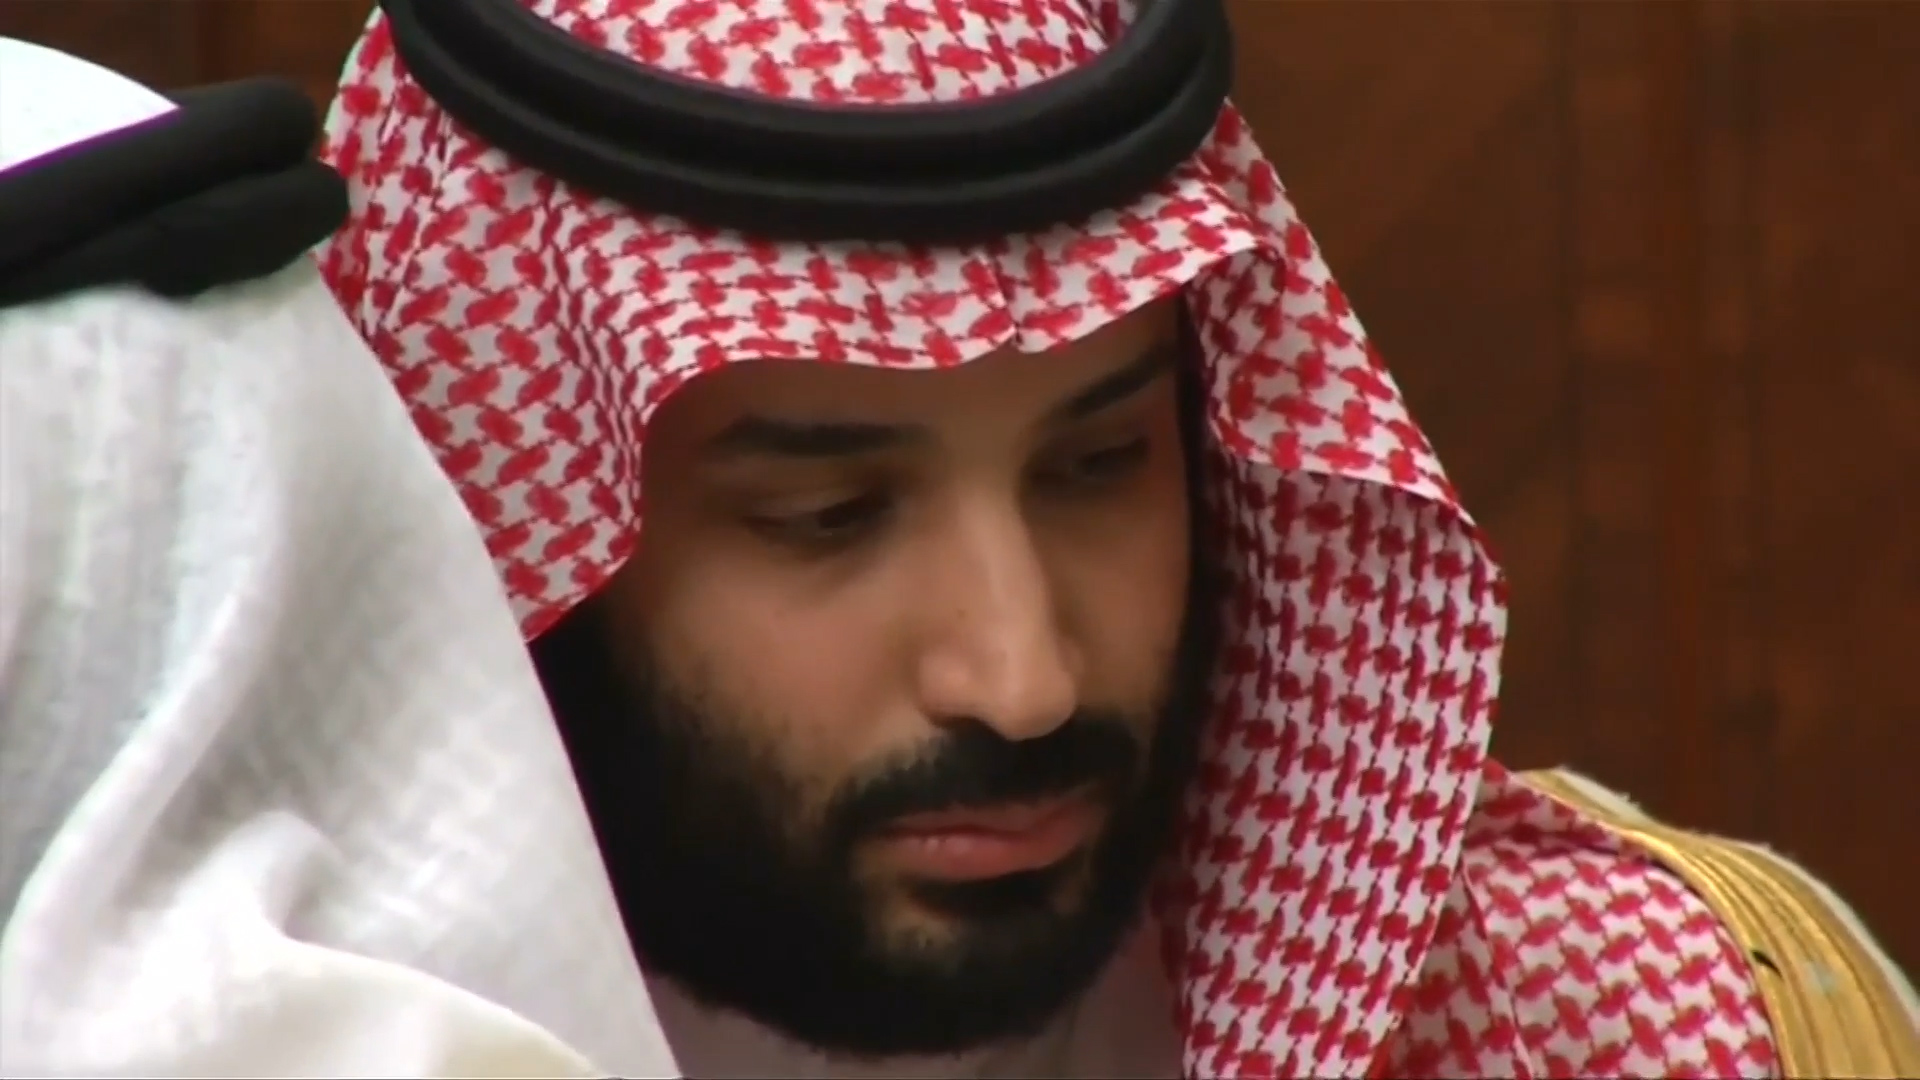 Senate to consider resolution condemning Saudi crown prince